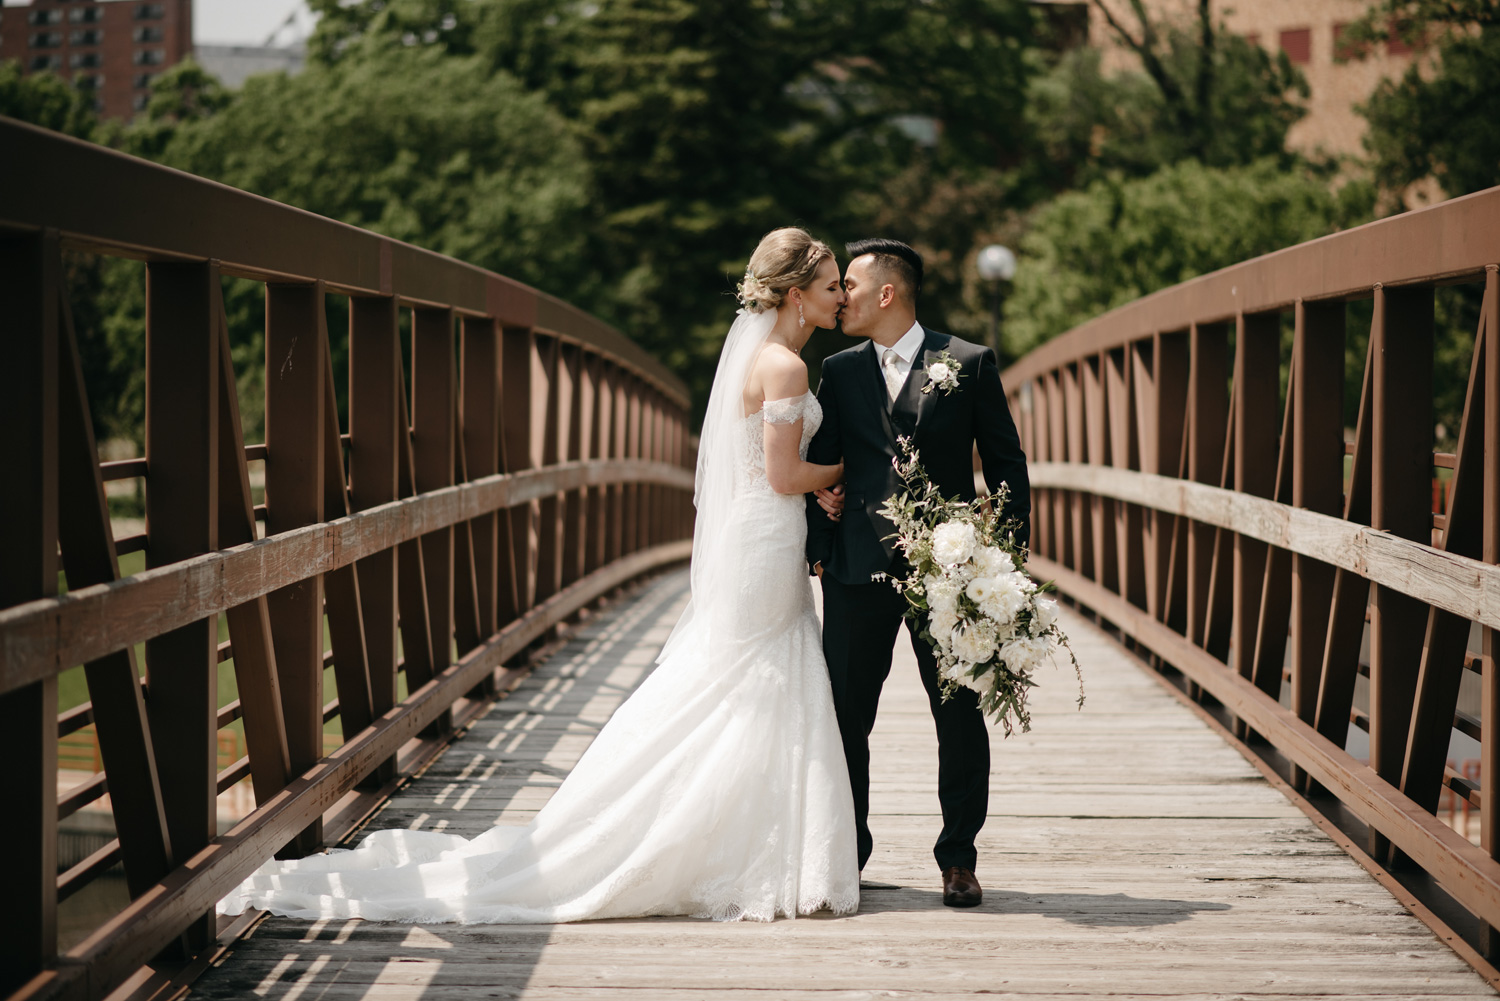 Bride and groom posing on bridge